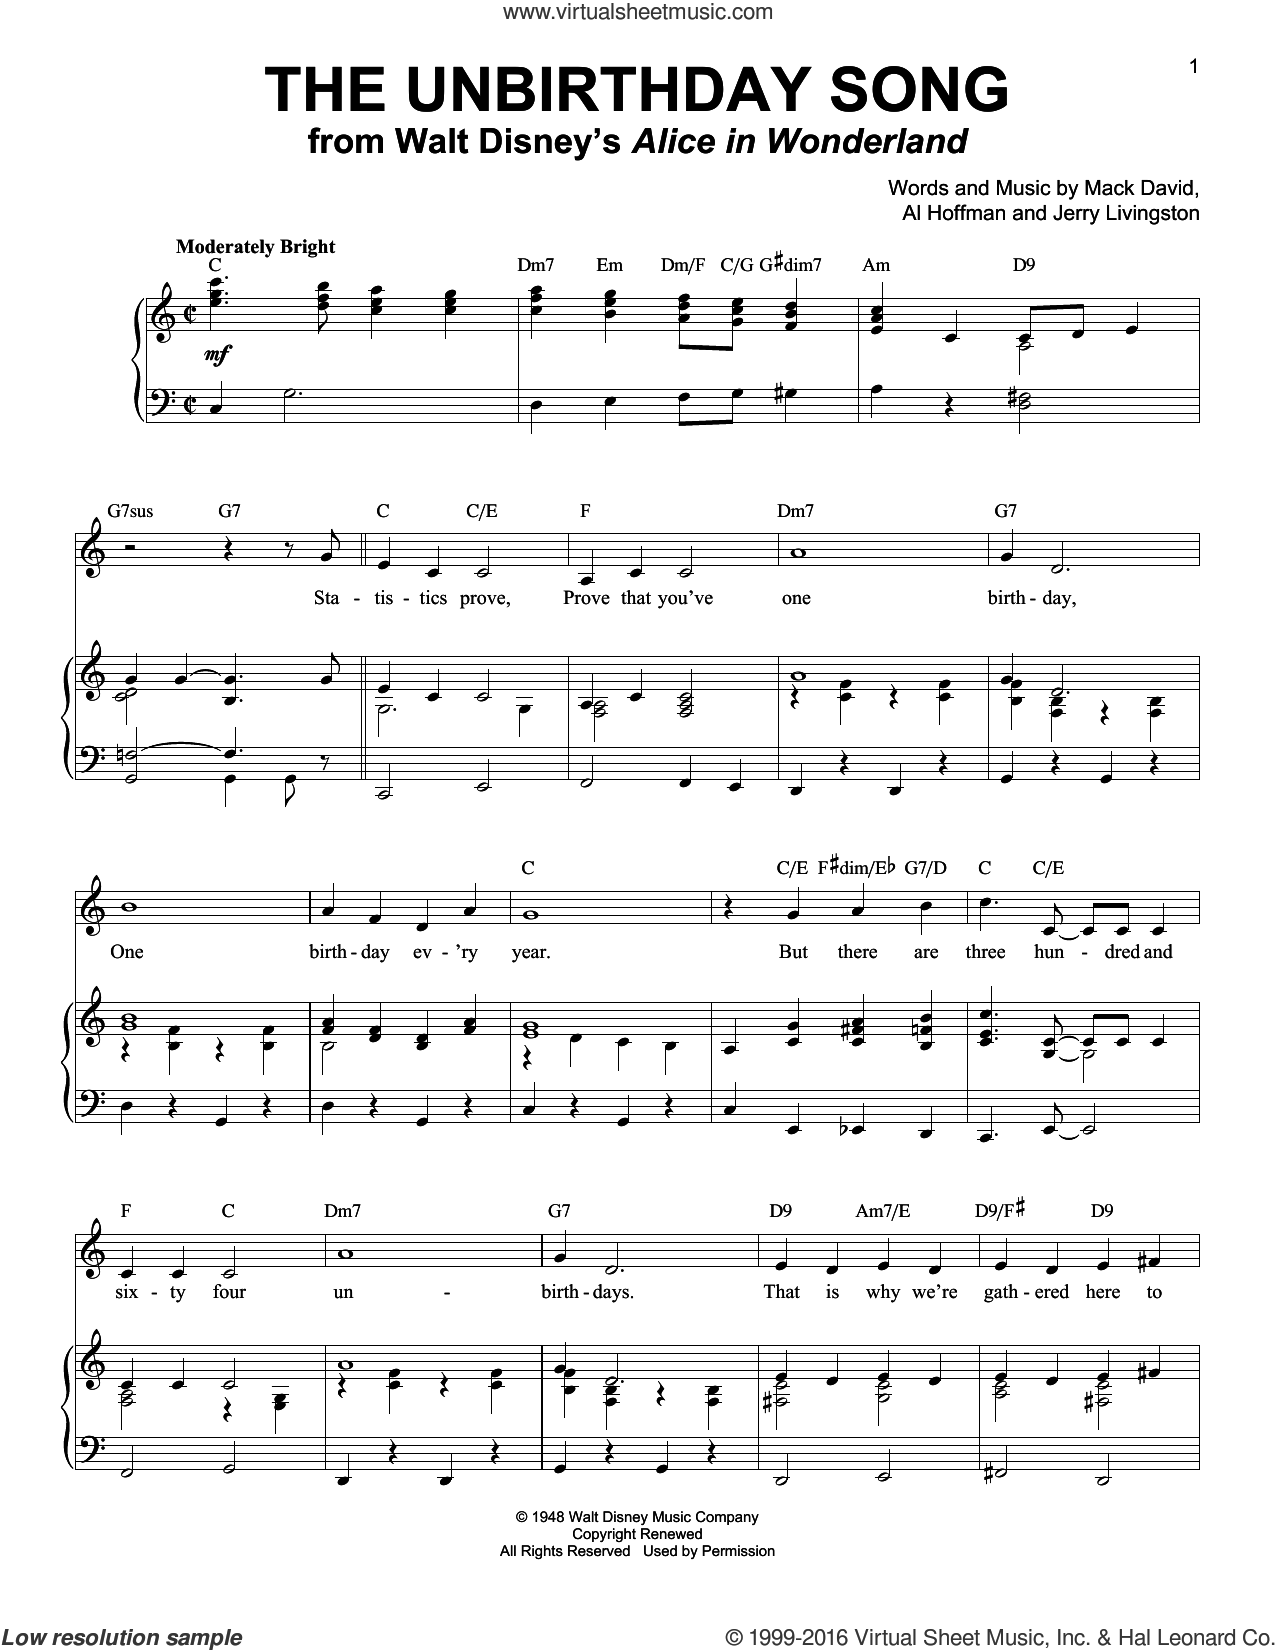 The Unbirthday Song sheet music for voice and piano by Mack David